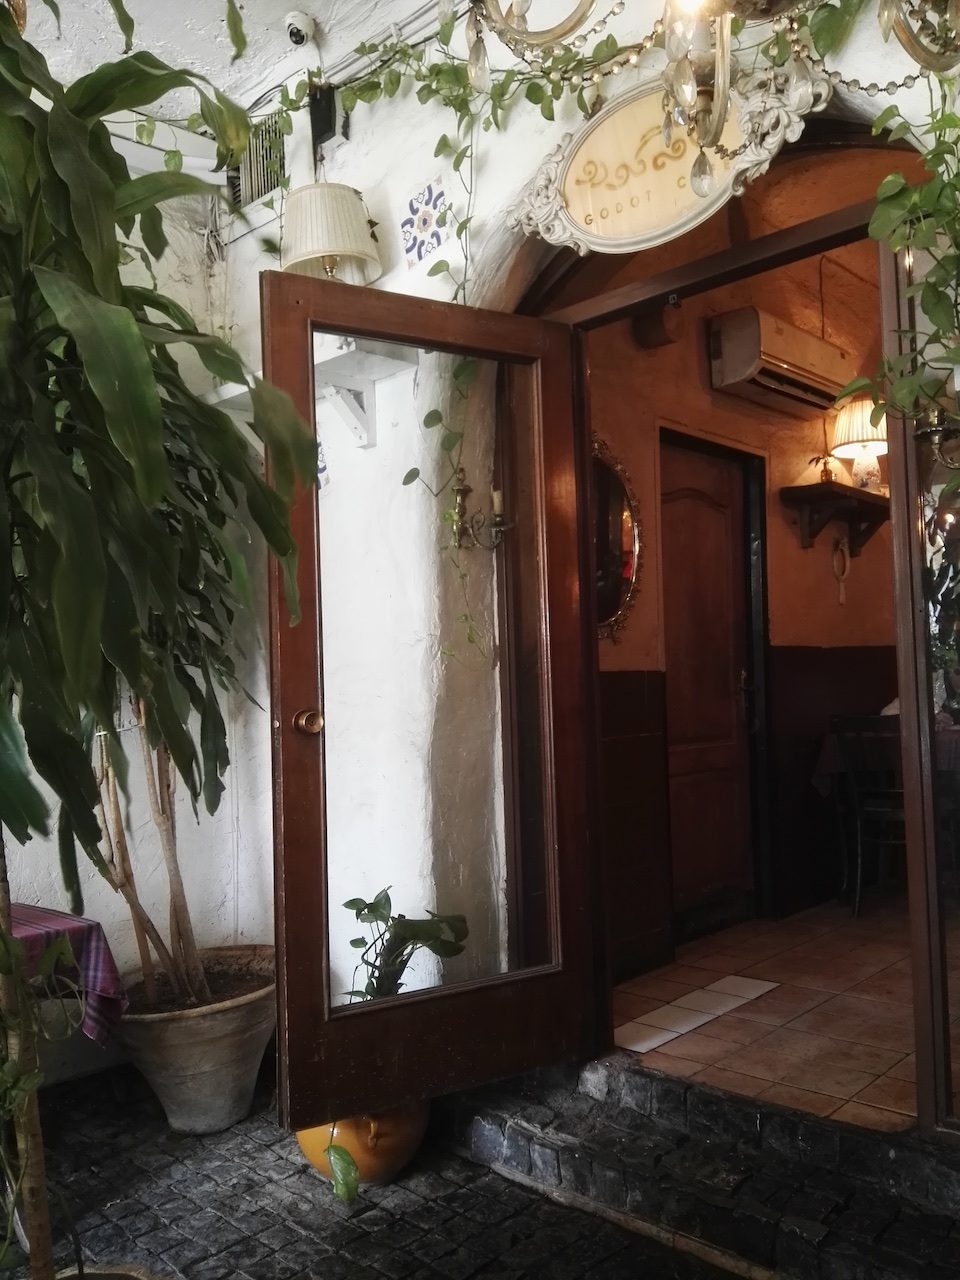 Cafe Godot doorway